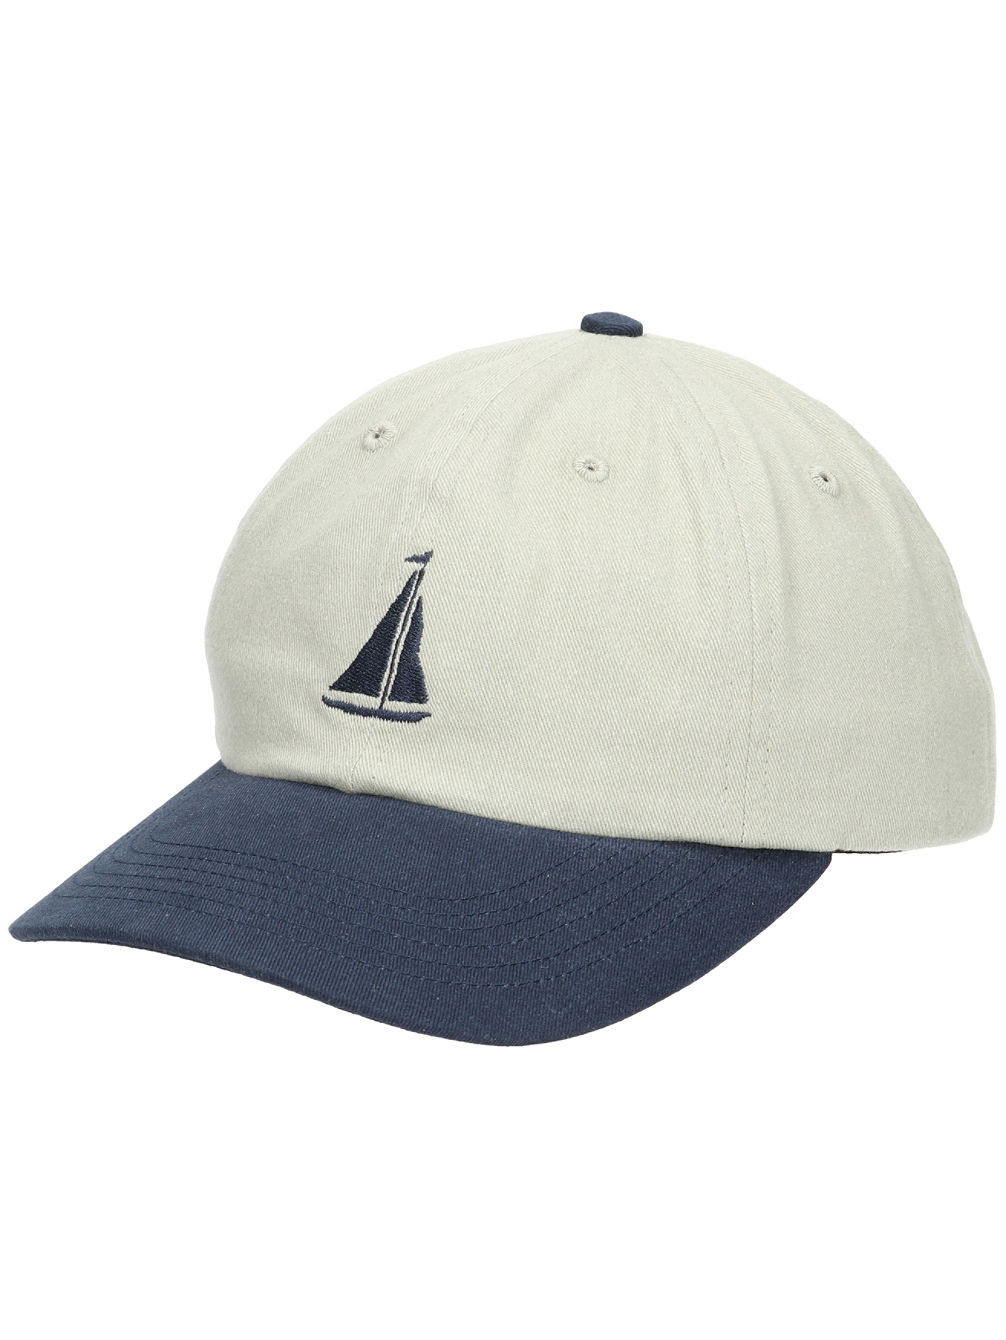 Sail Polo Hat Cap